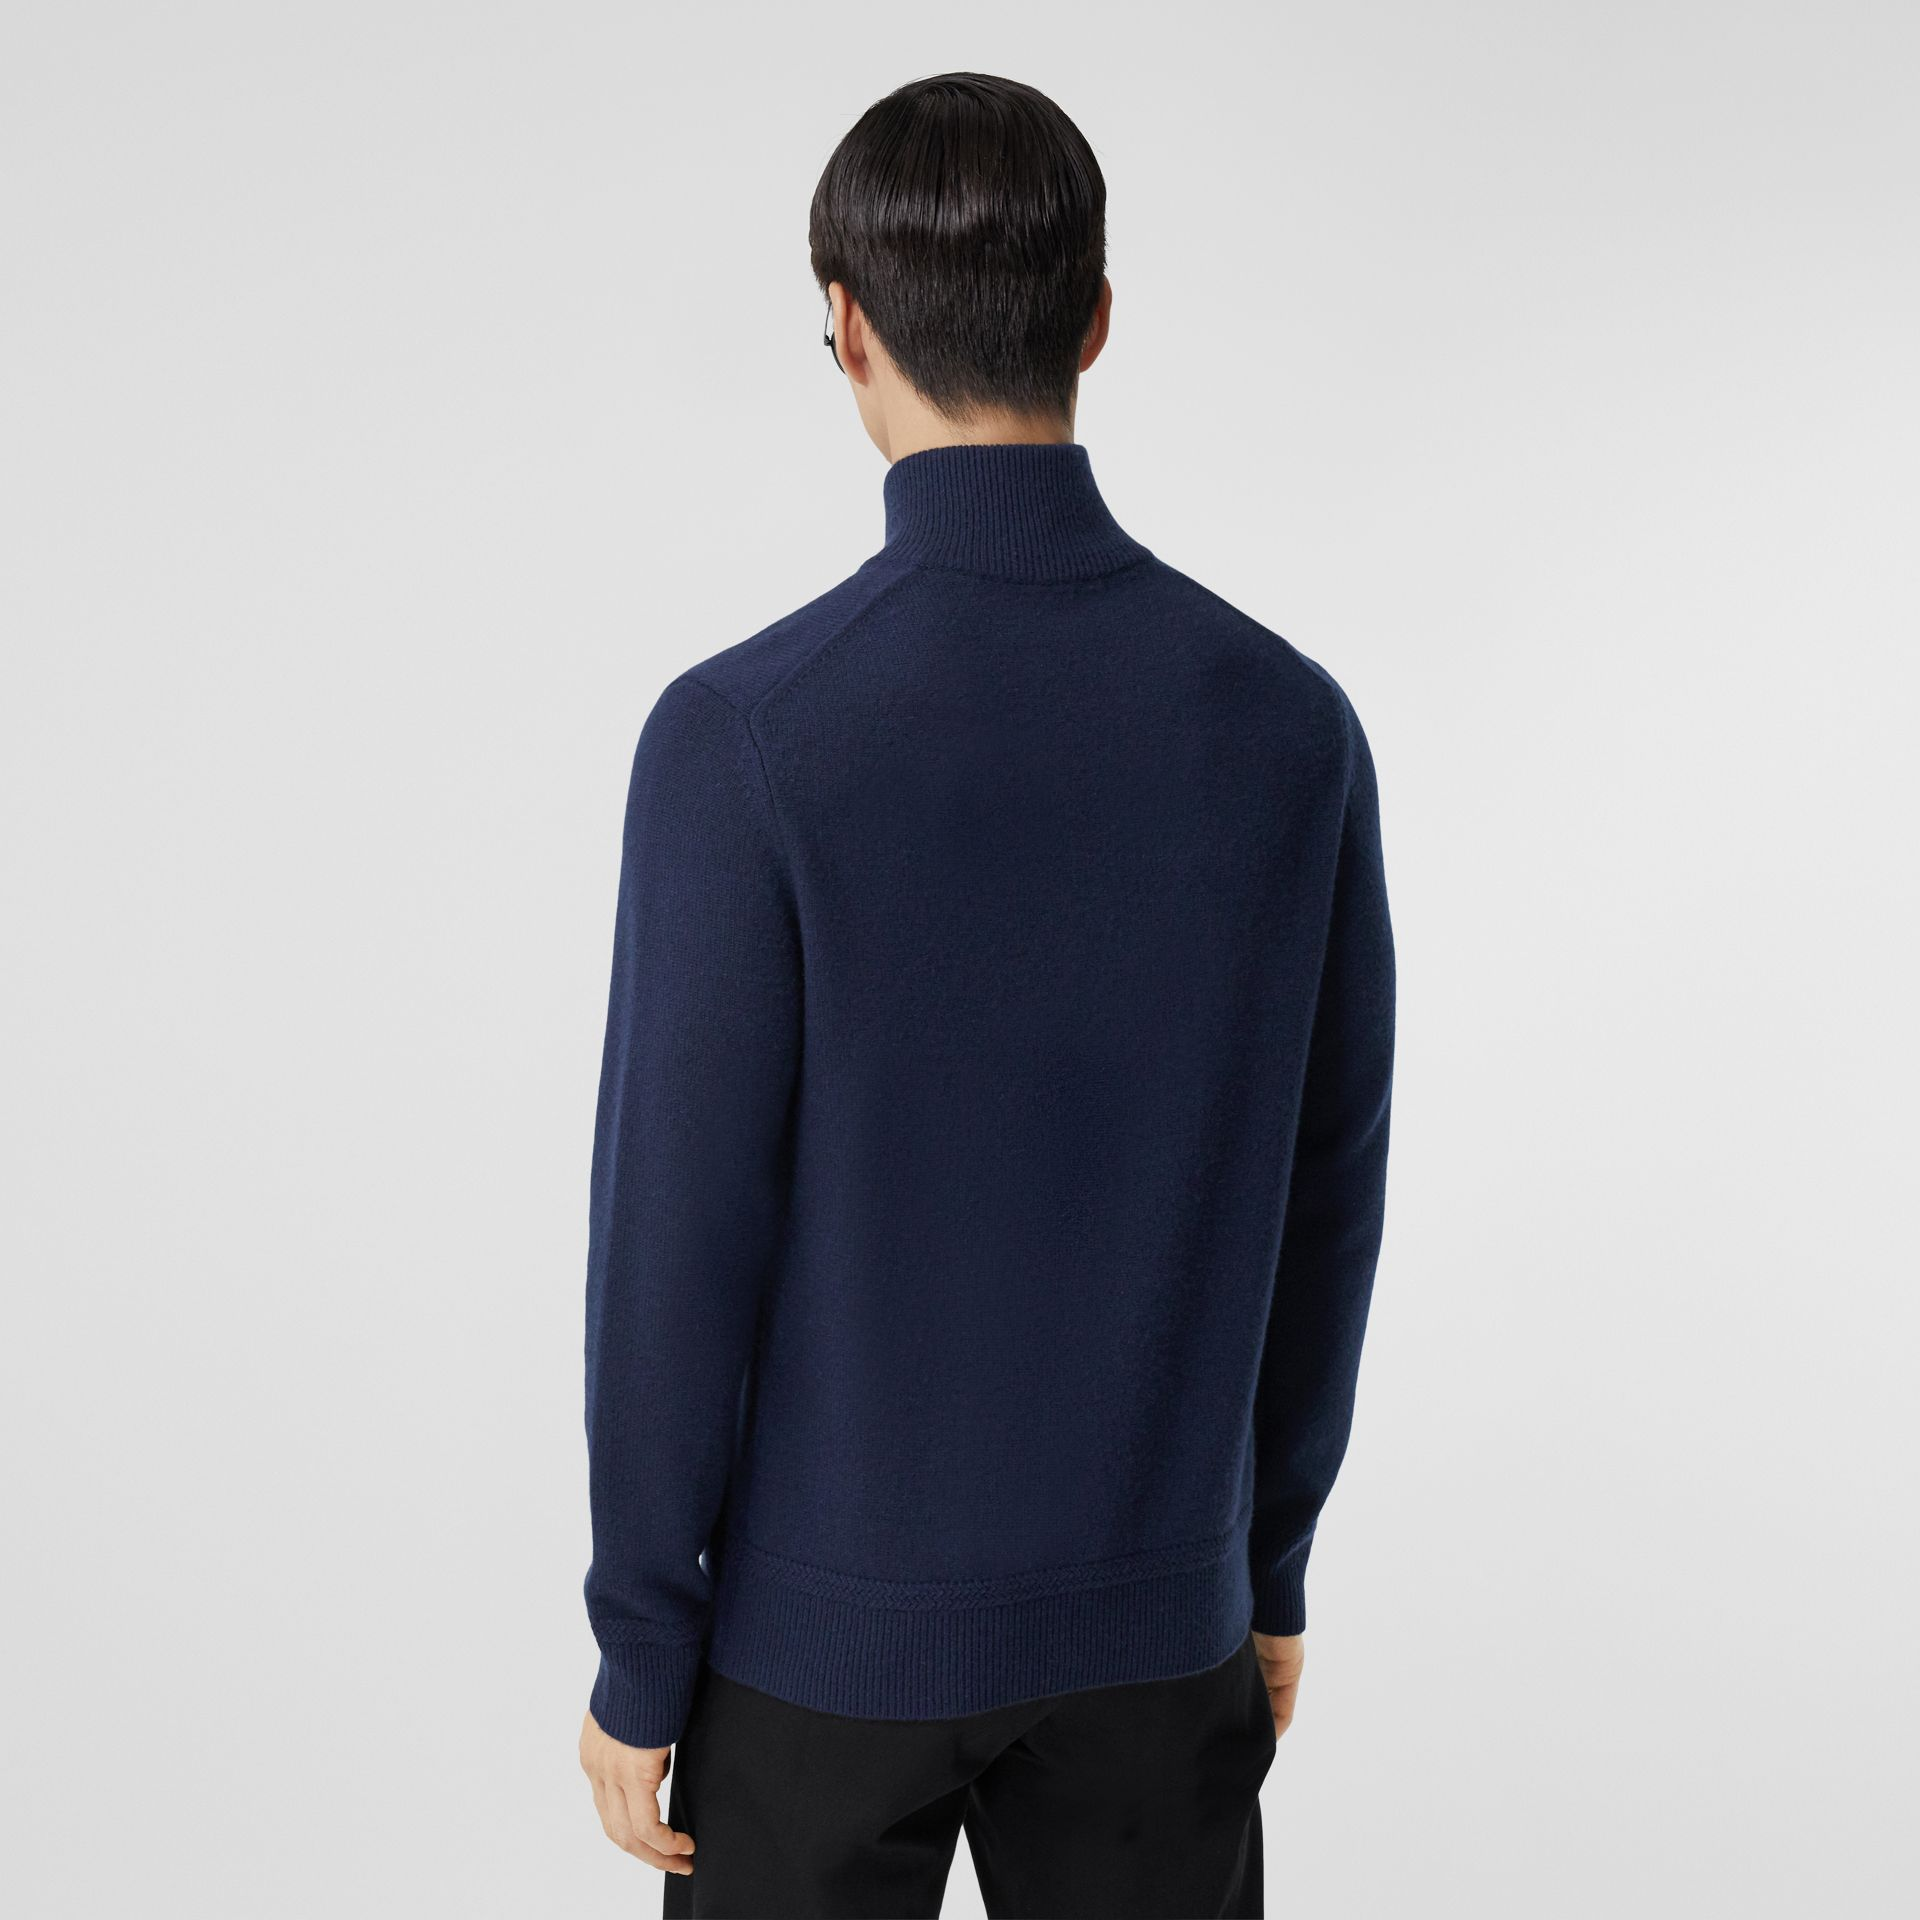 Monogram Motif Cashmere Funnel Neck Sweater in Navy - Men | Burberry - gallery image 2